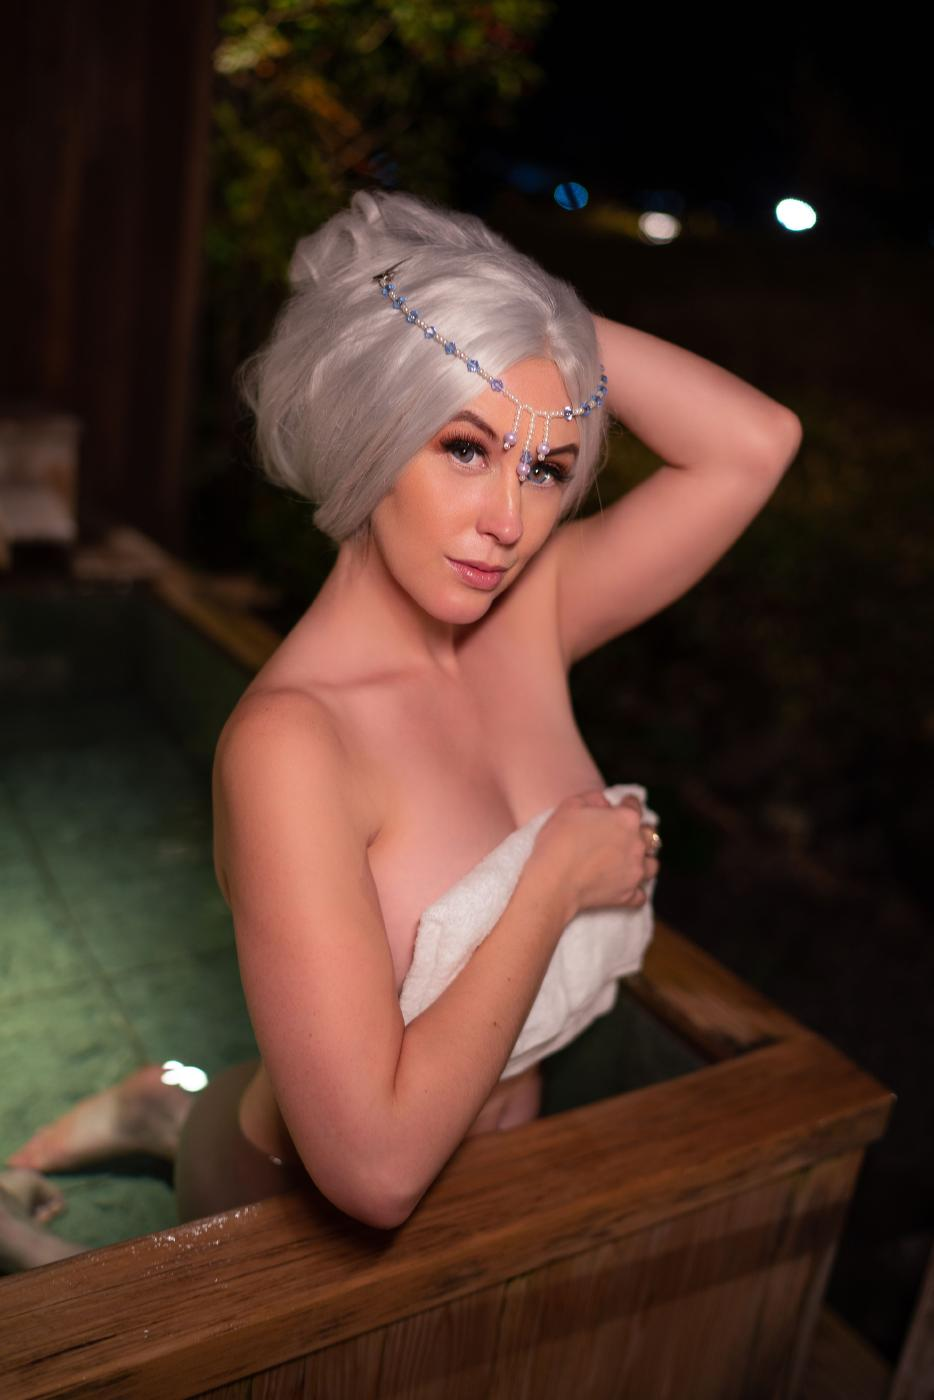 Meg Turney Onlyfans Nude Winter Goddess Onsen Leaked0010